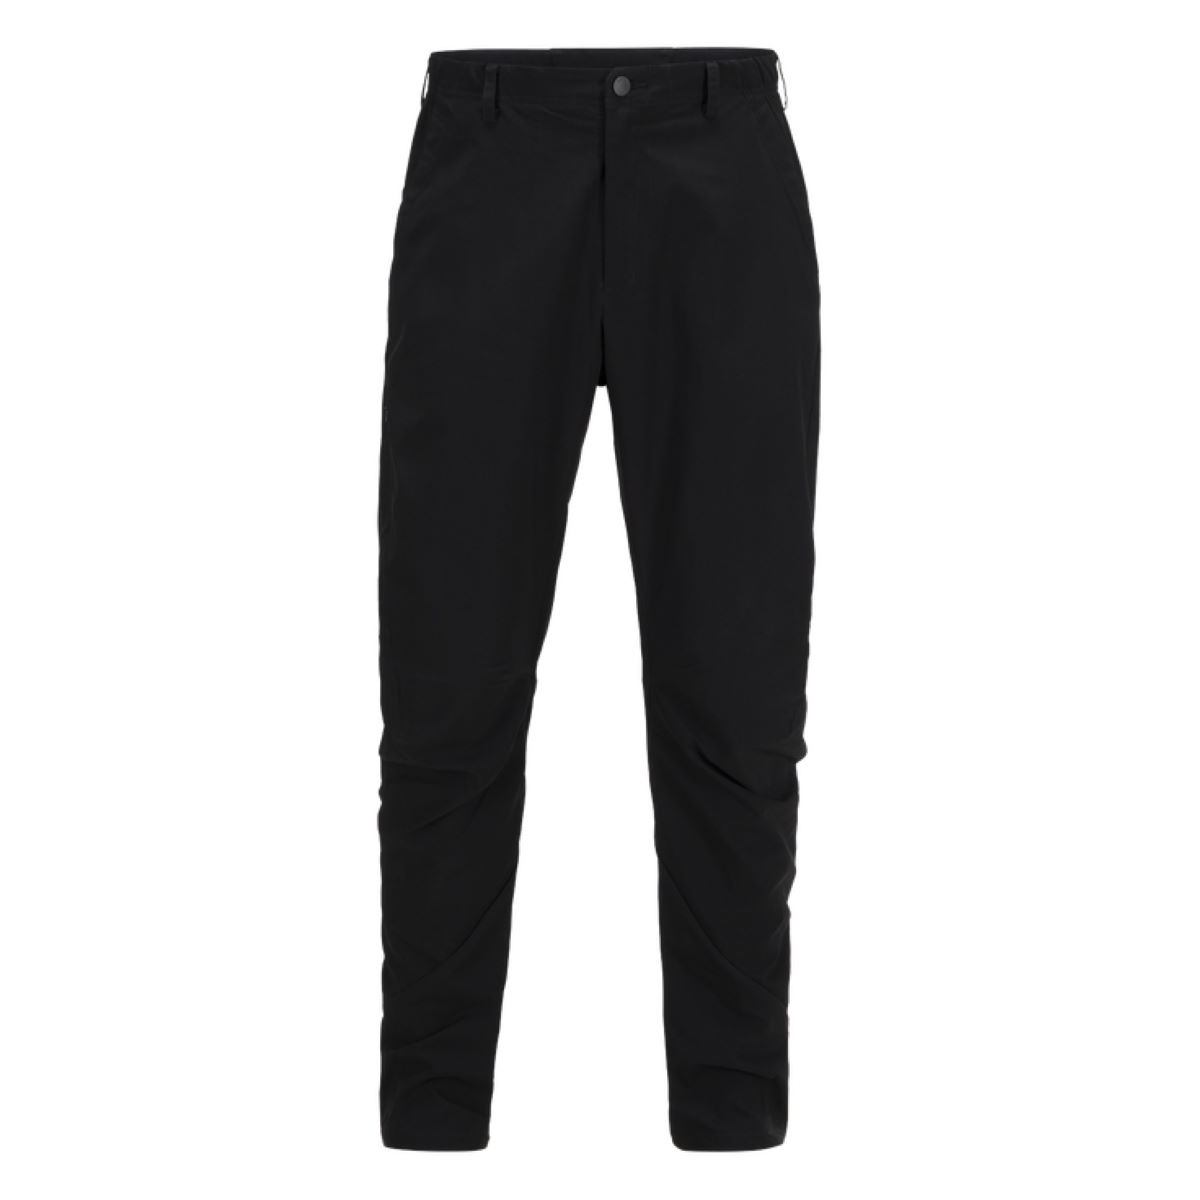 Pantalon Peak Performance Civil - XL Noir Pantalons